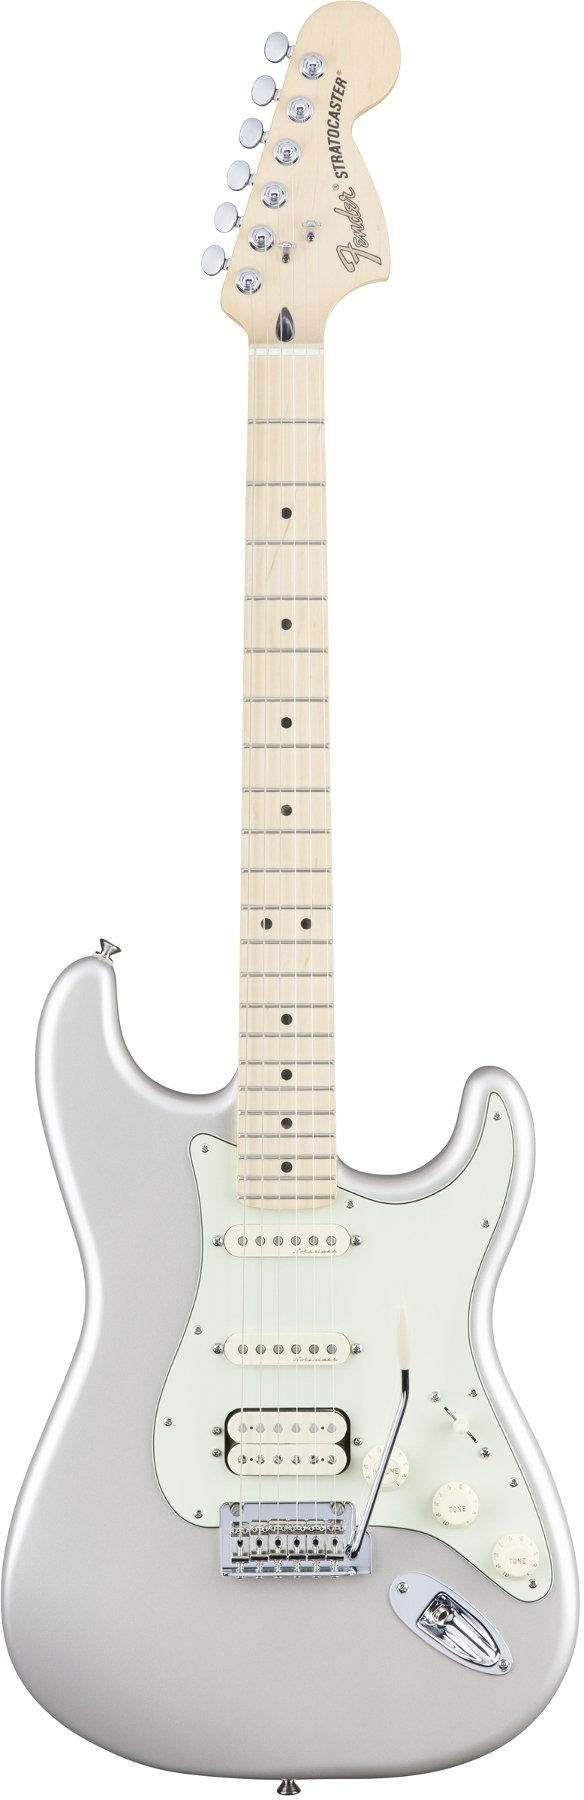 Fender Deluxe Stratocaster HSS Electric Guitar, Maple Neck STRAT-DLX-HSS-MN